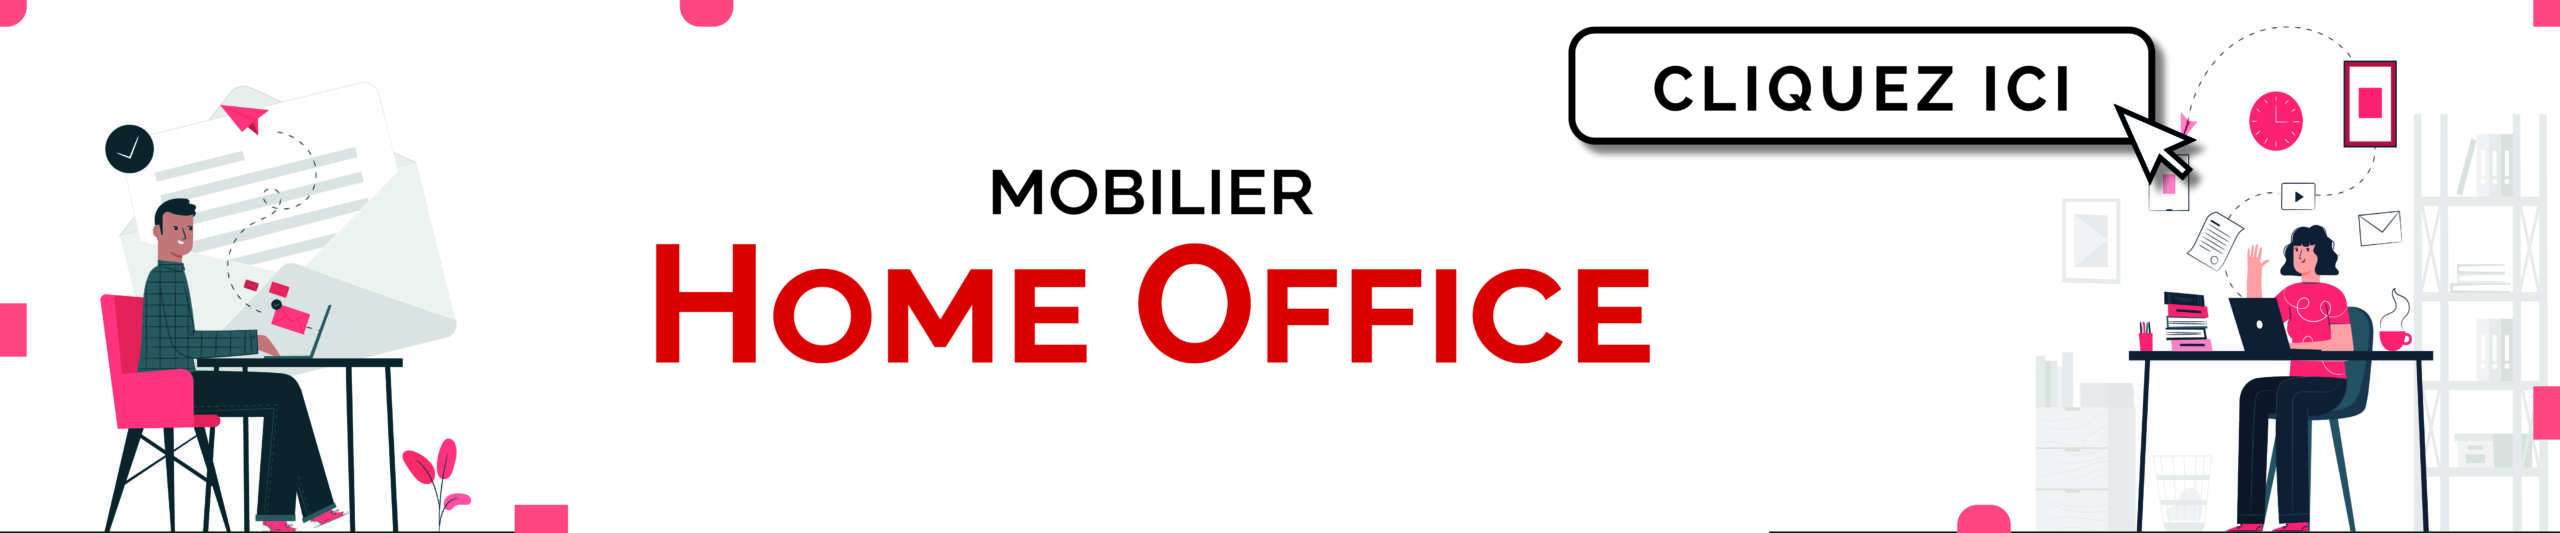 offre home office adexgroup